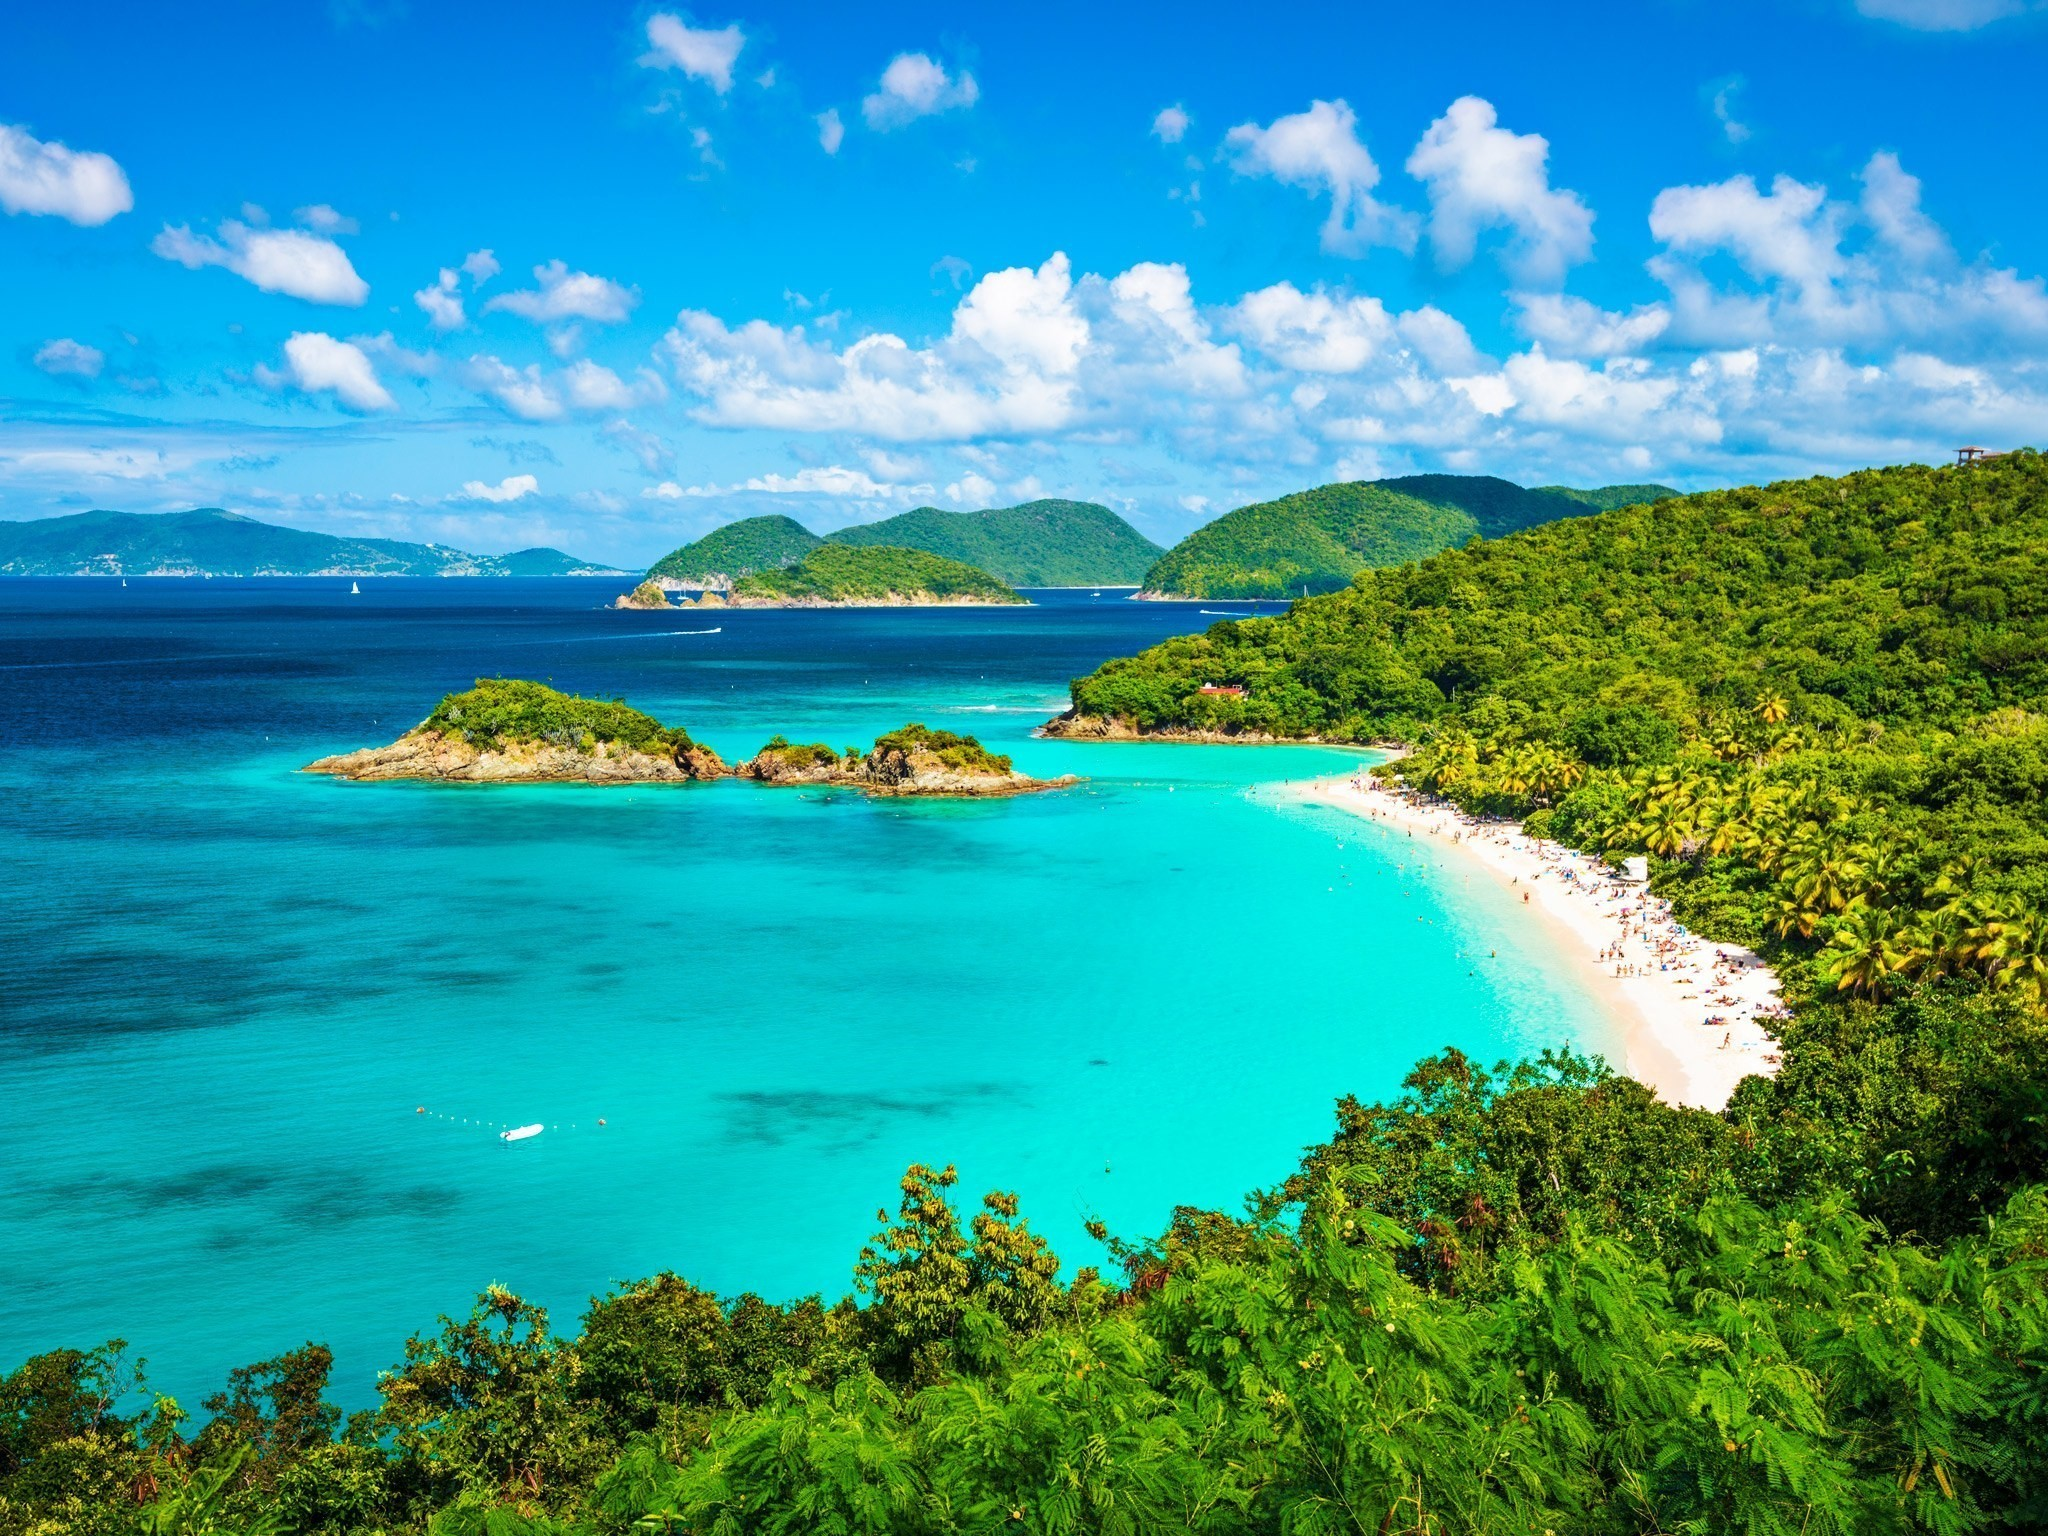 The 8 Most Beautiful National Park Beaches in the U.S.